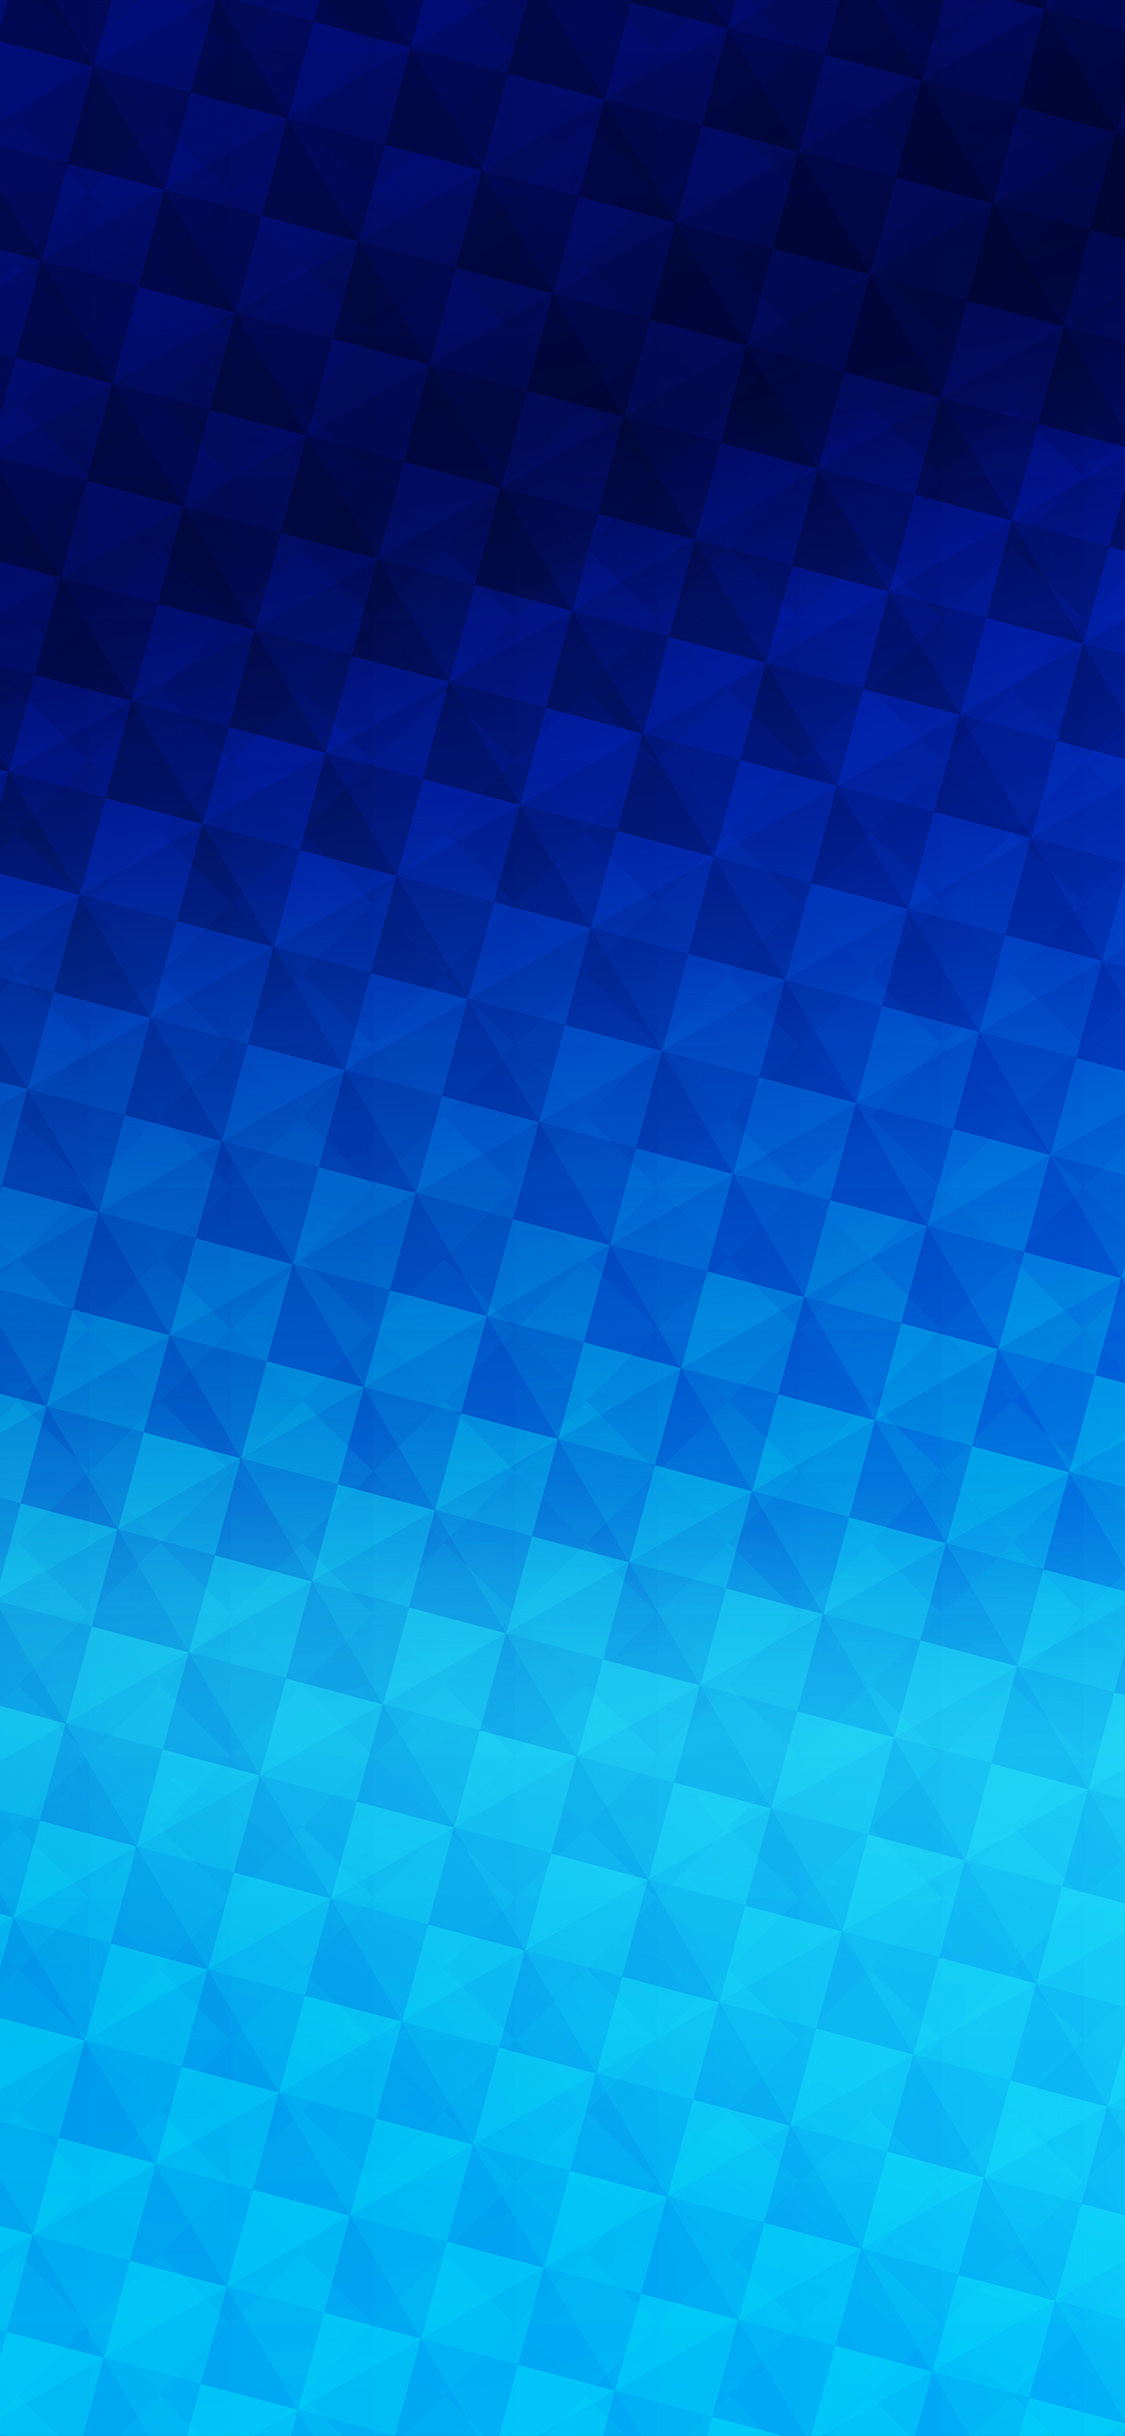 iPhoneXpapers.com-Apple-iPhone-wallpaper-vo77-blue-sunny-art-abstract-blur-pattern